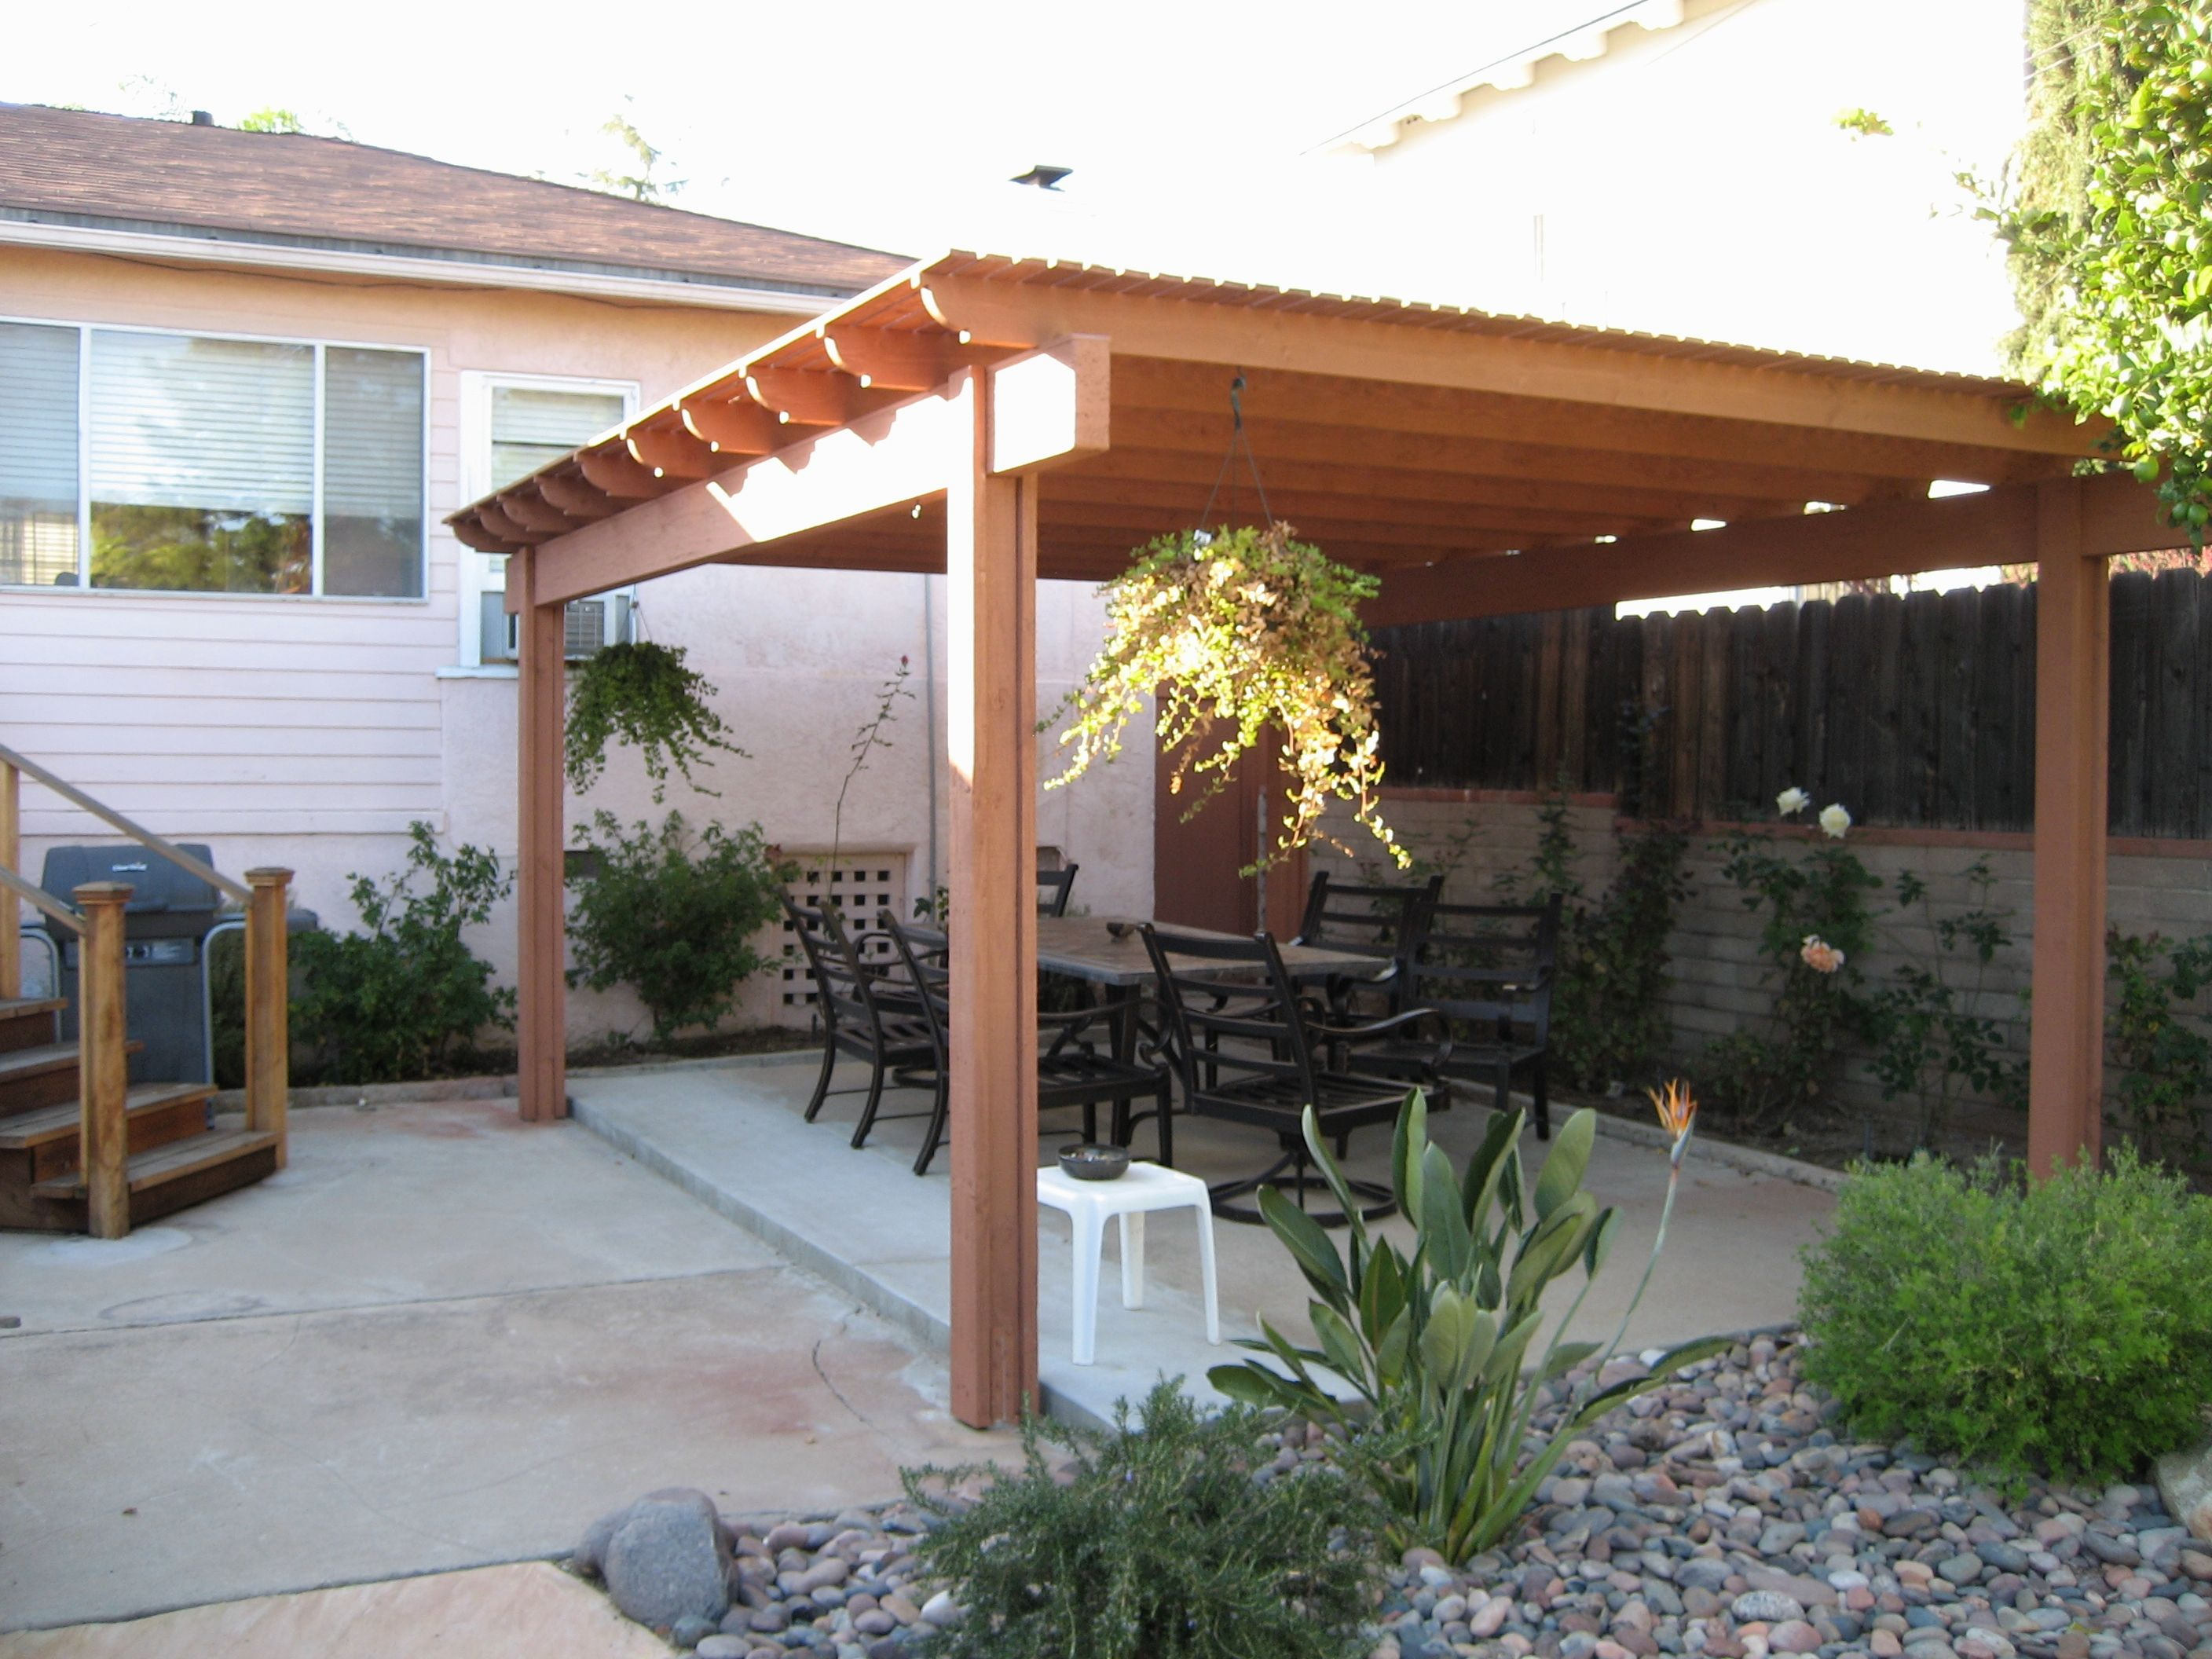 29 beautiful diy patio plans to build to complete your home covered patio design patio designs patio ideas